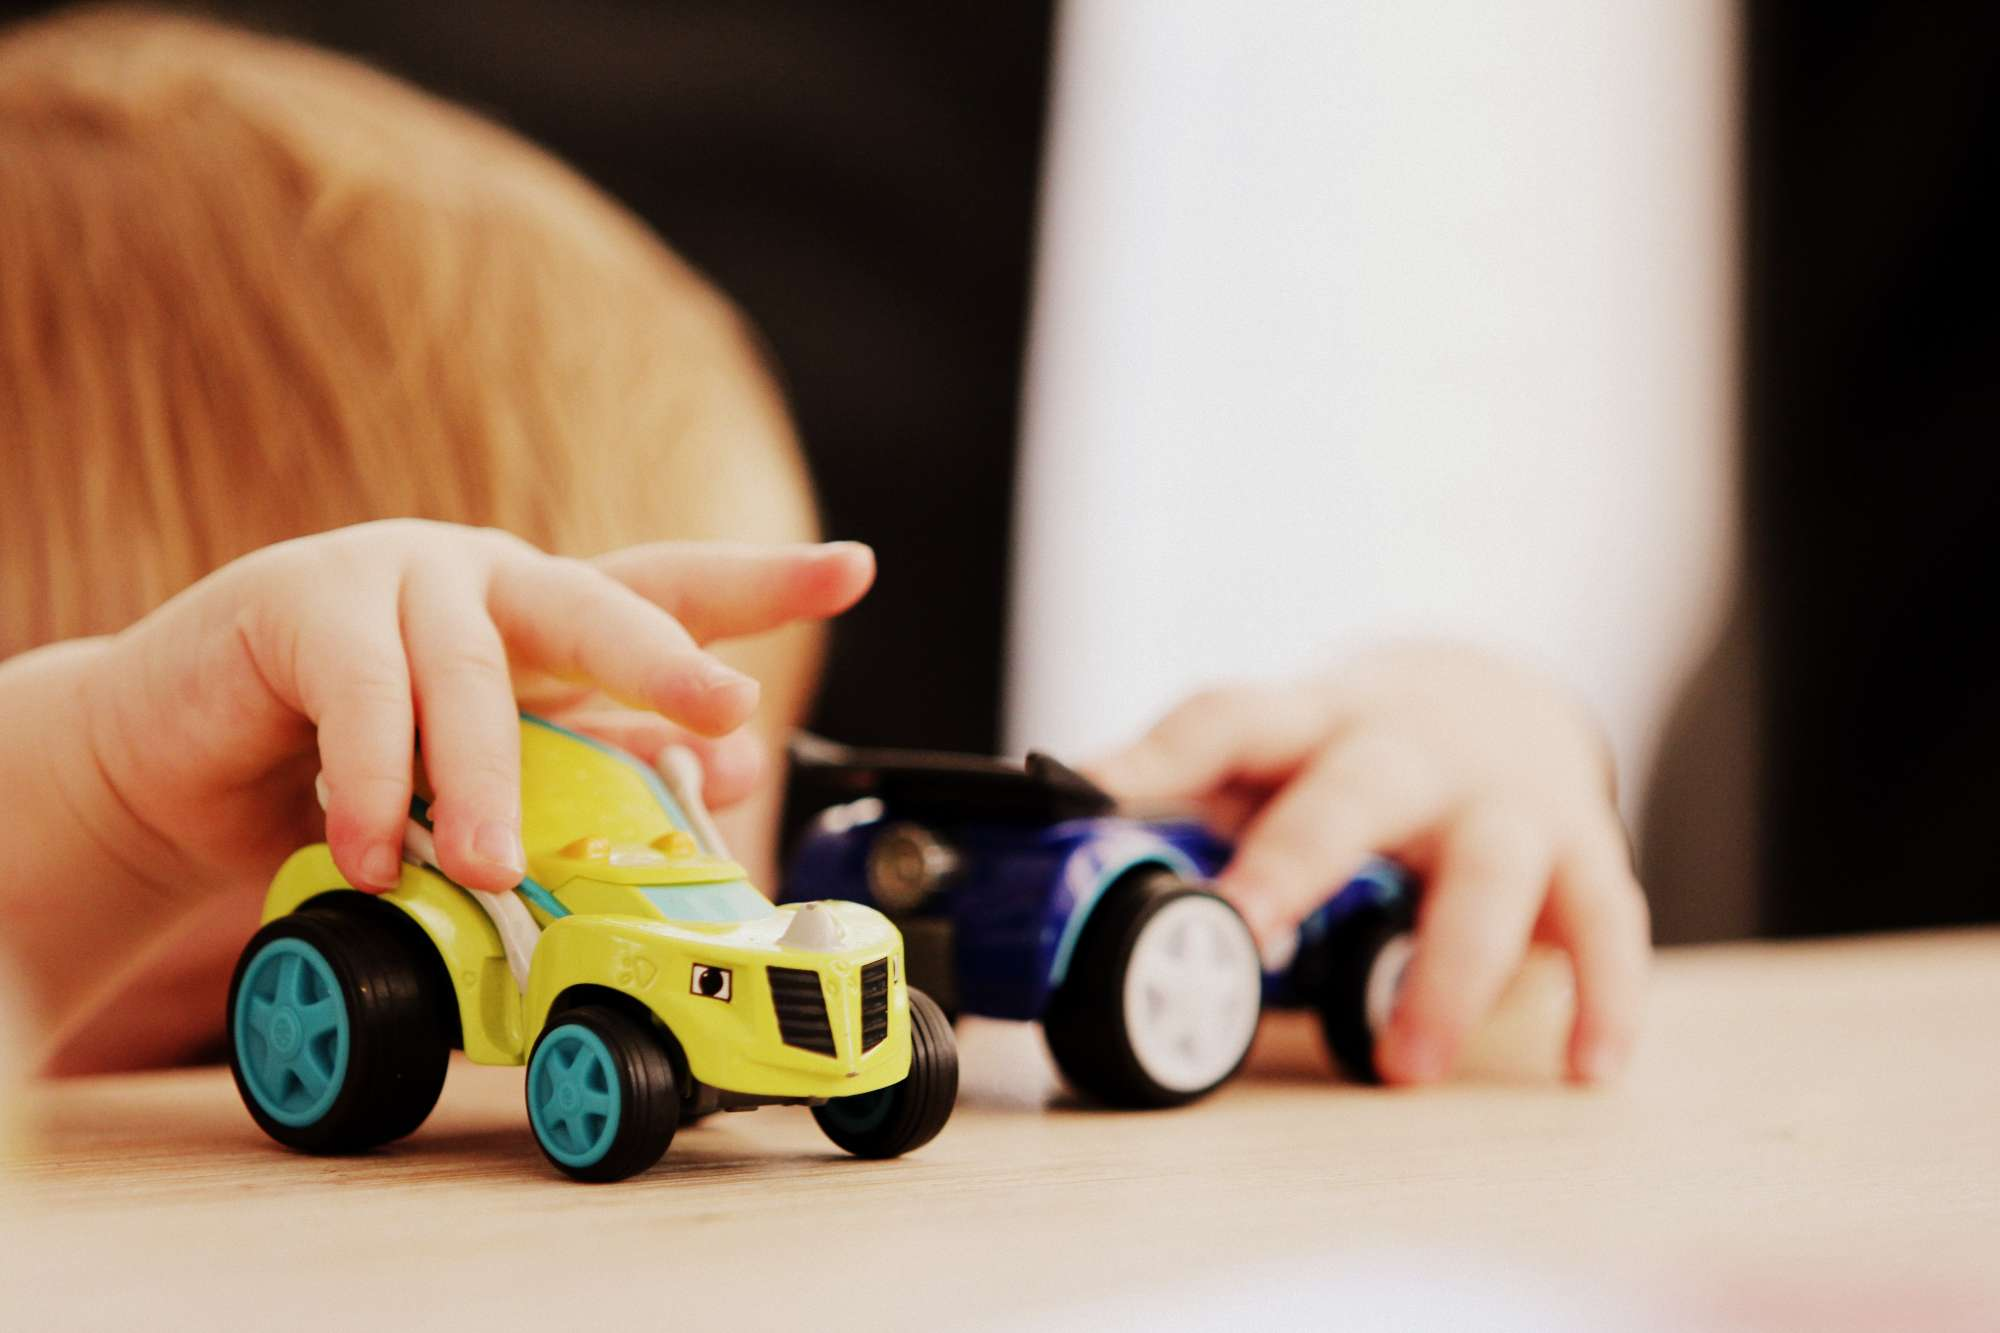 A child playing with toy cars